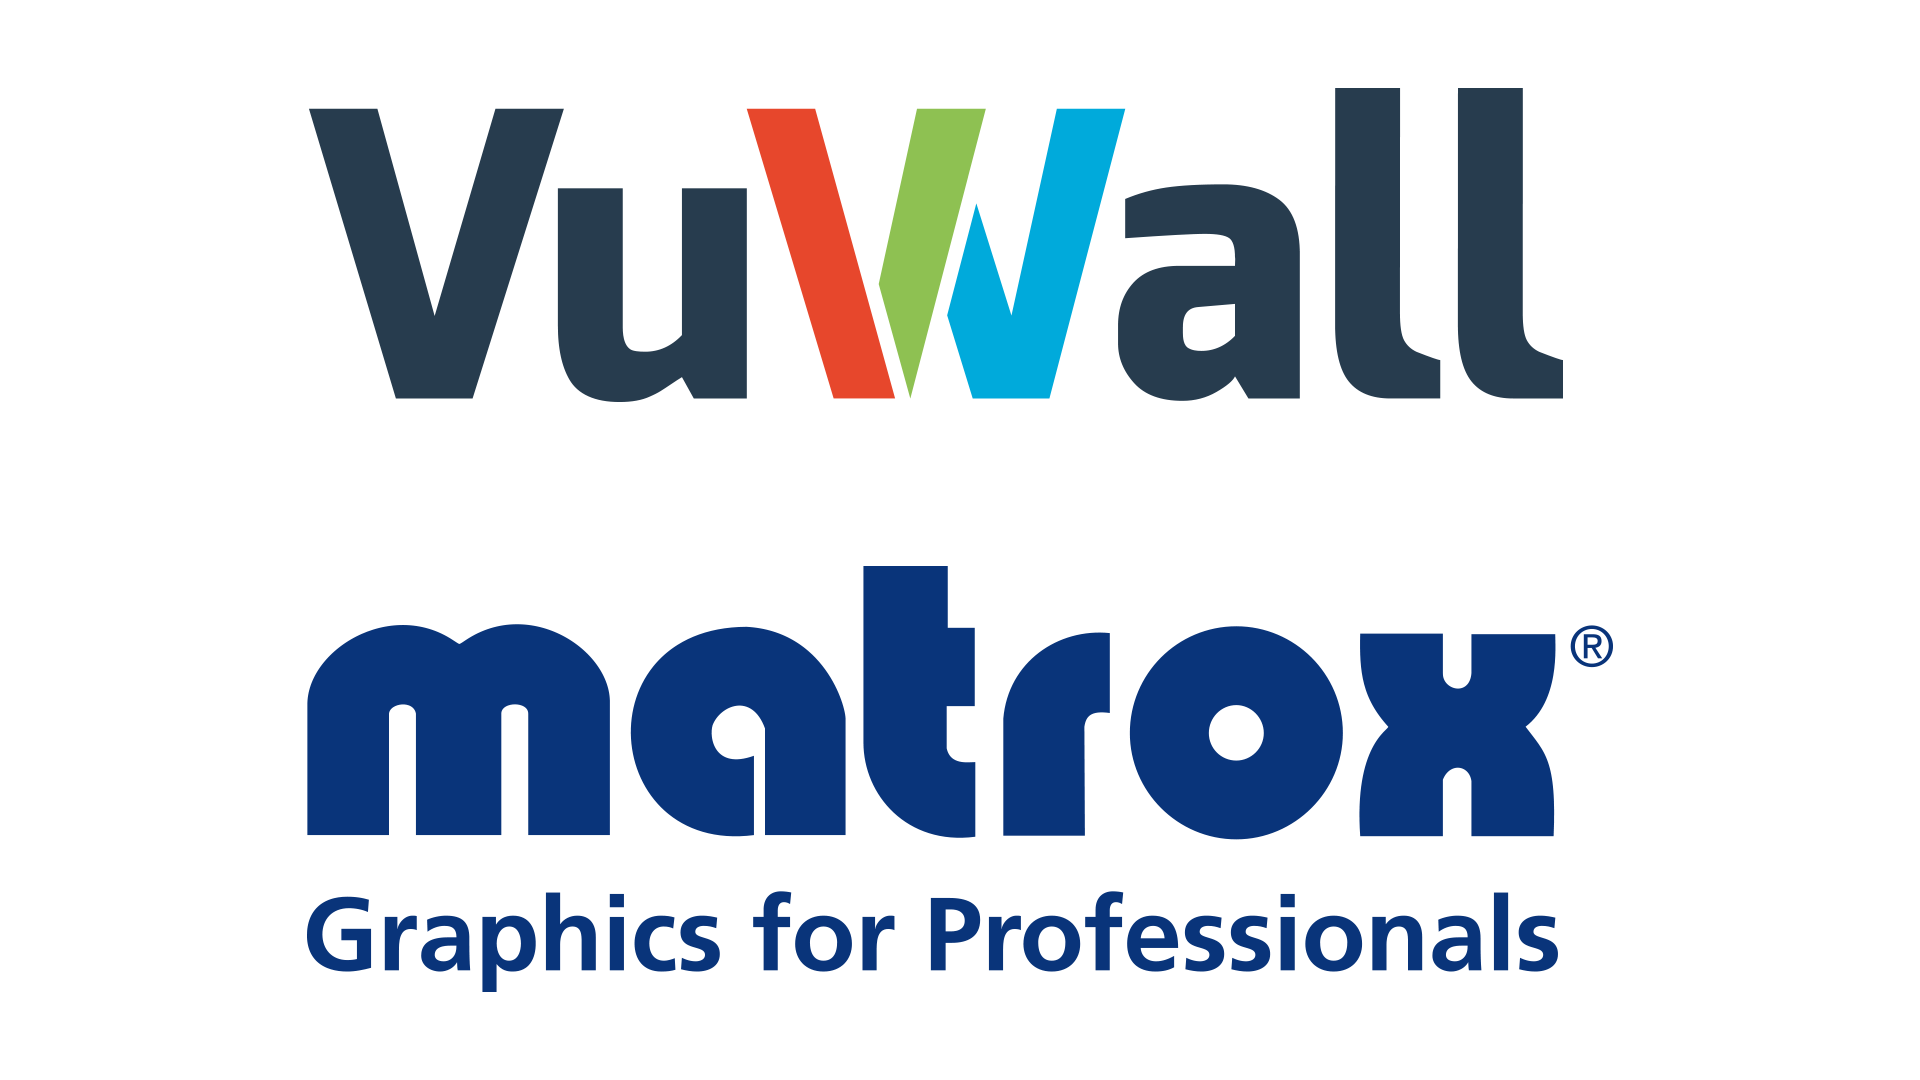 VuWall and Matrox graphics for professionals highest-density video wall platform